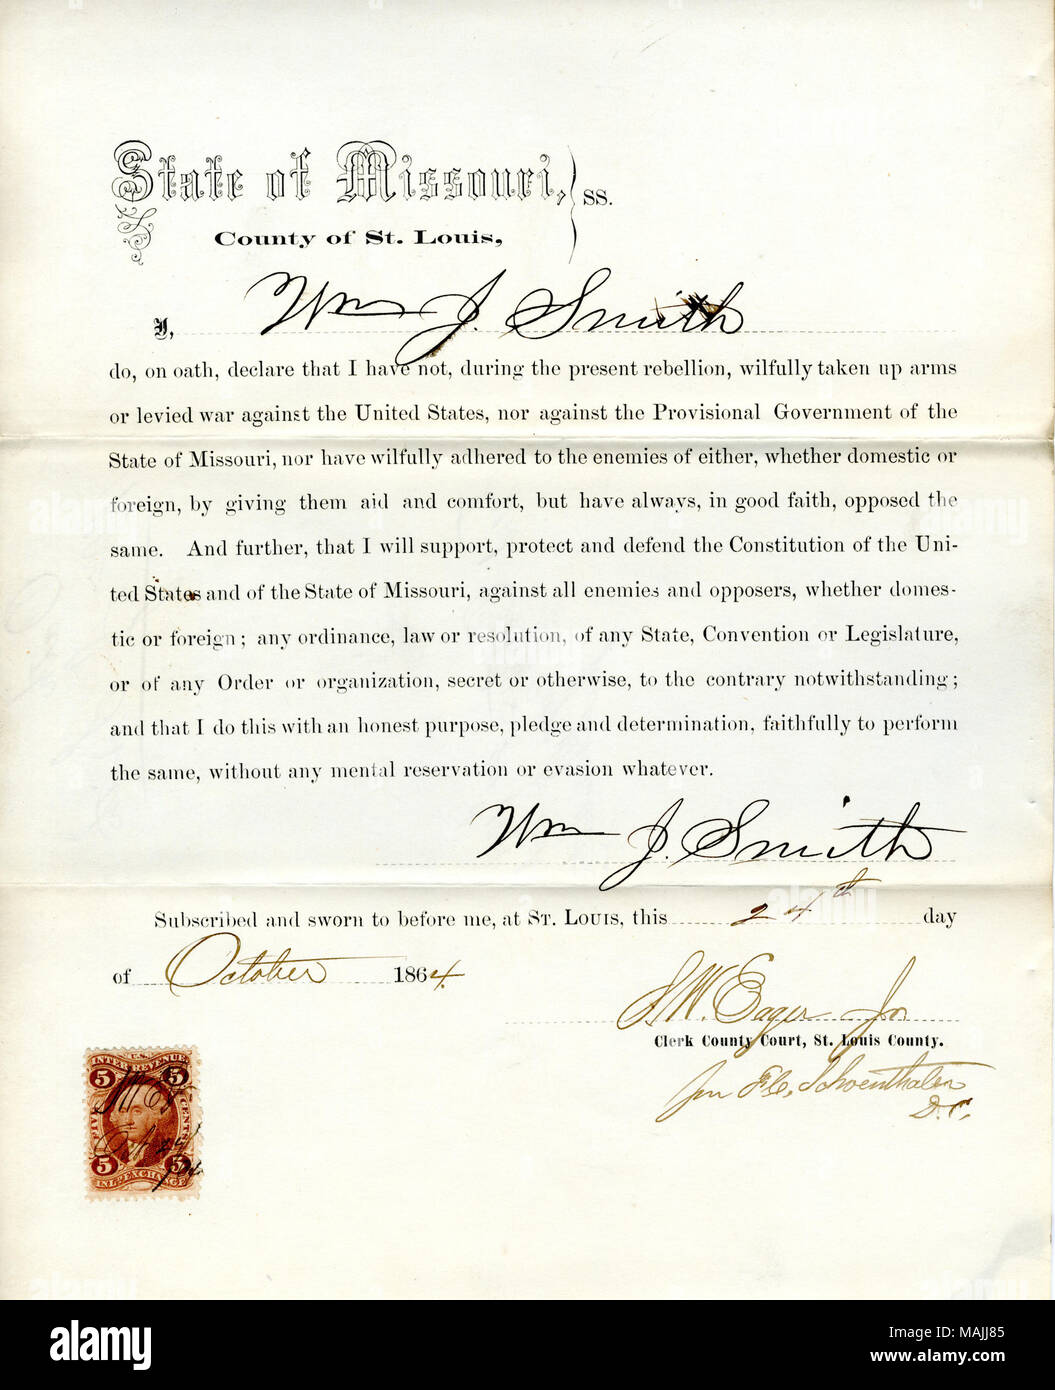 Swears oath of allegiance to the Government of the United States and the State of Missouri. Title: Loyalty oath of Wm. J. Smith of Missouri, County of St. Louis  . 24 October 1864. Smith, W.J. - Stock Image